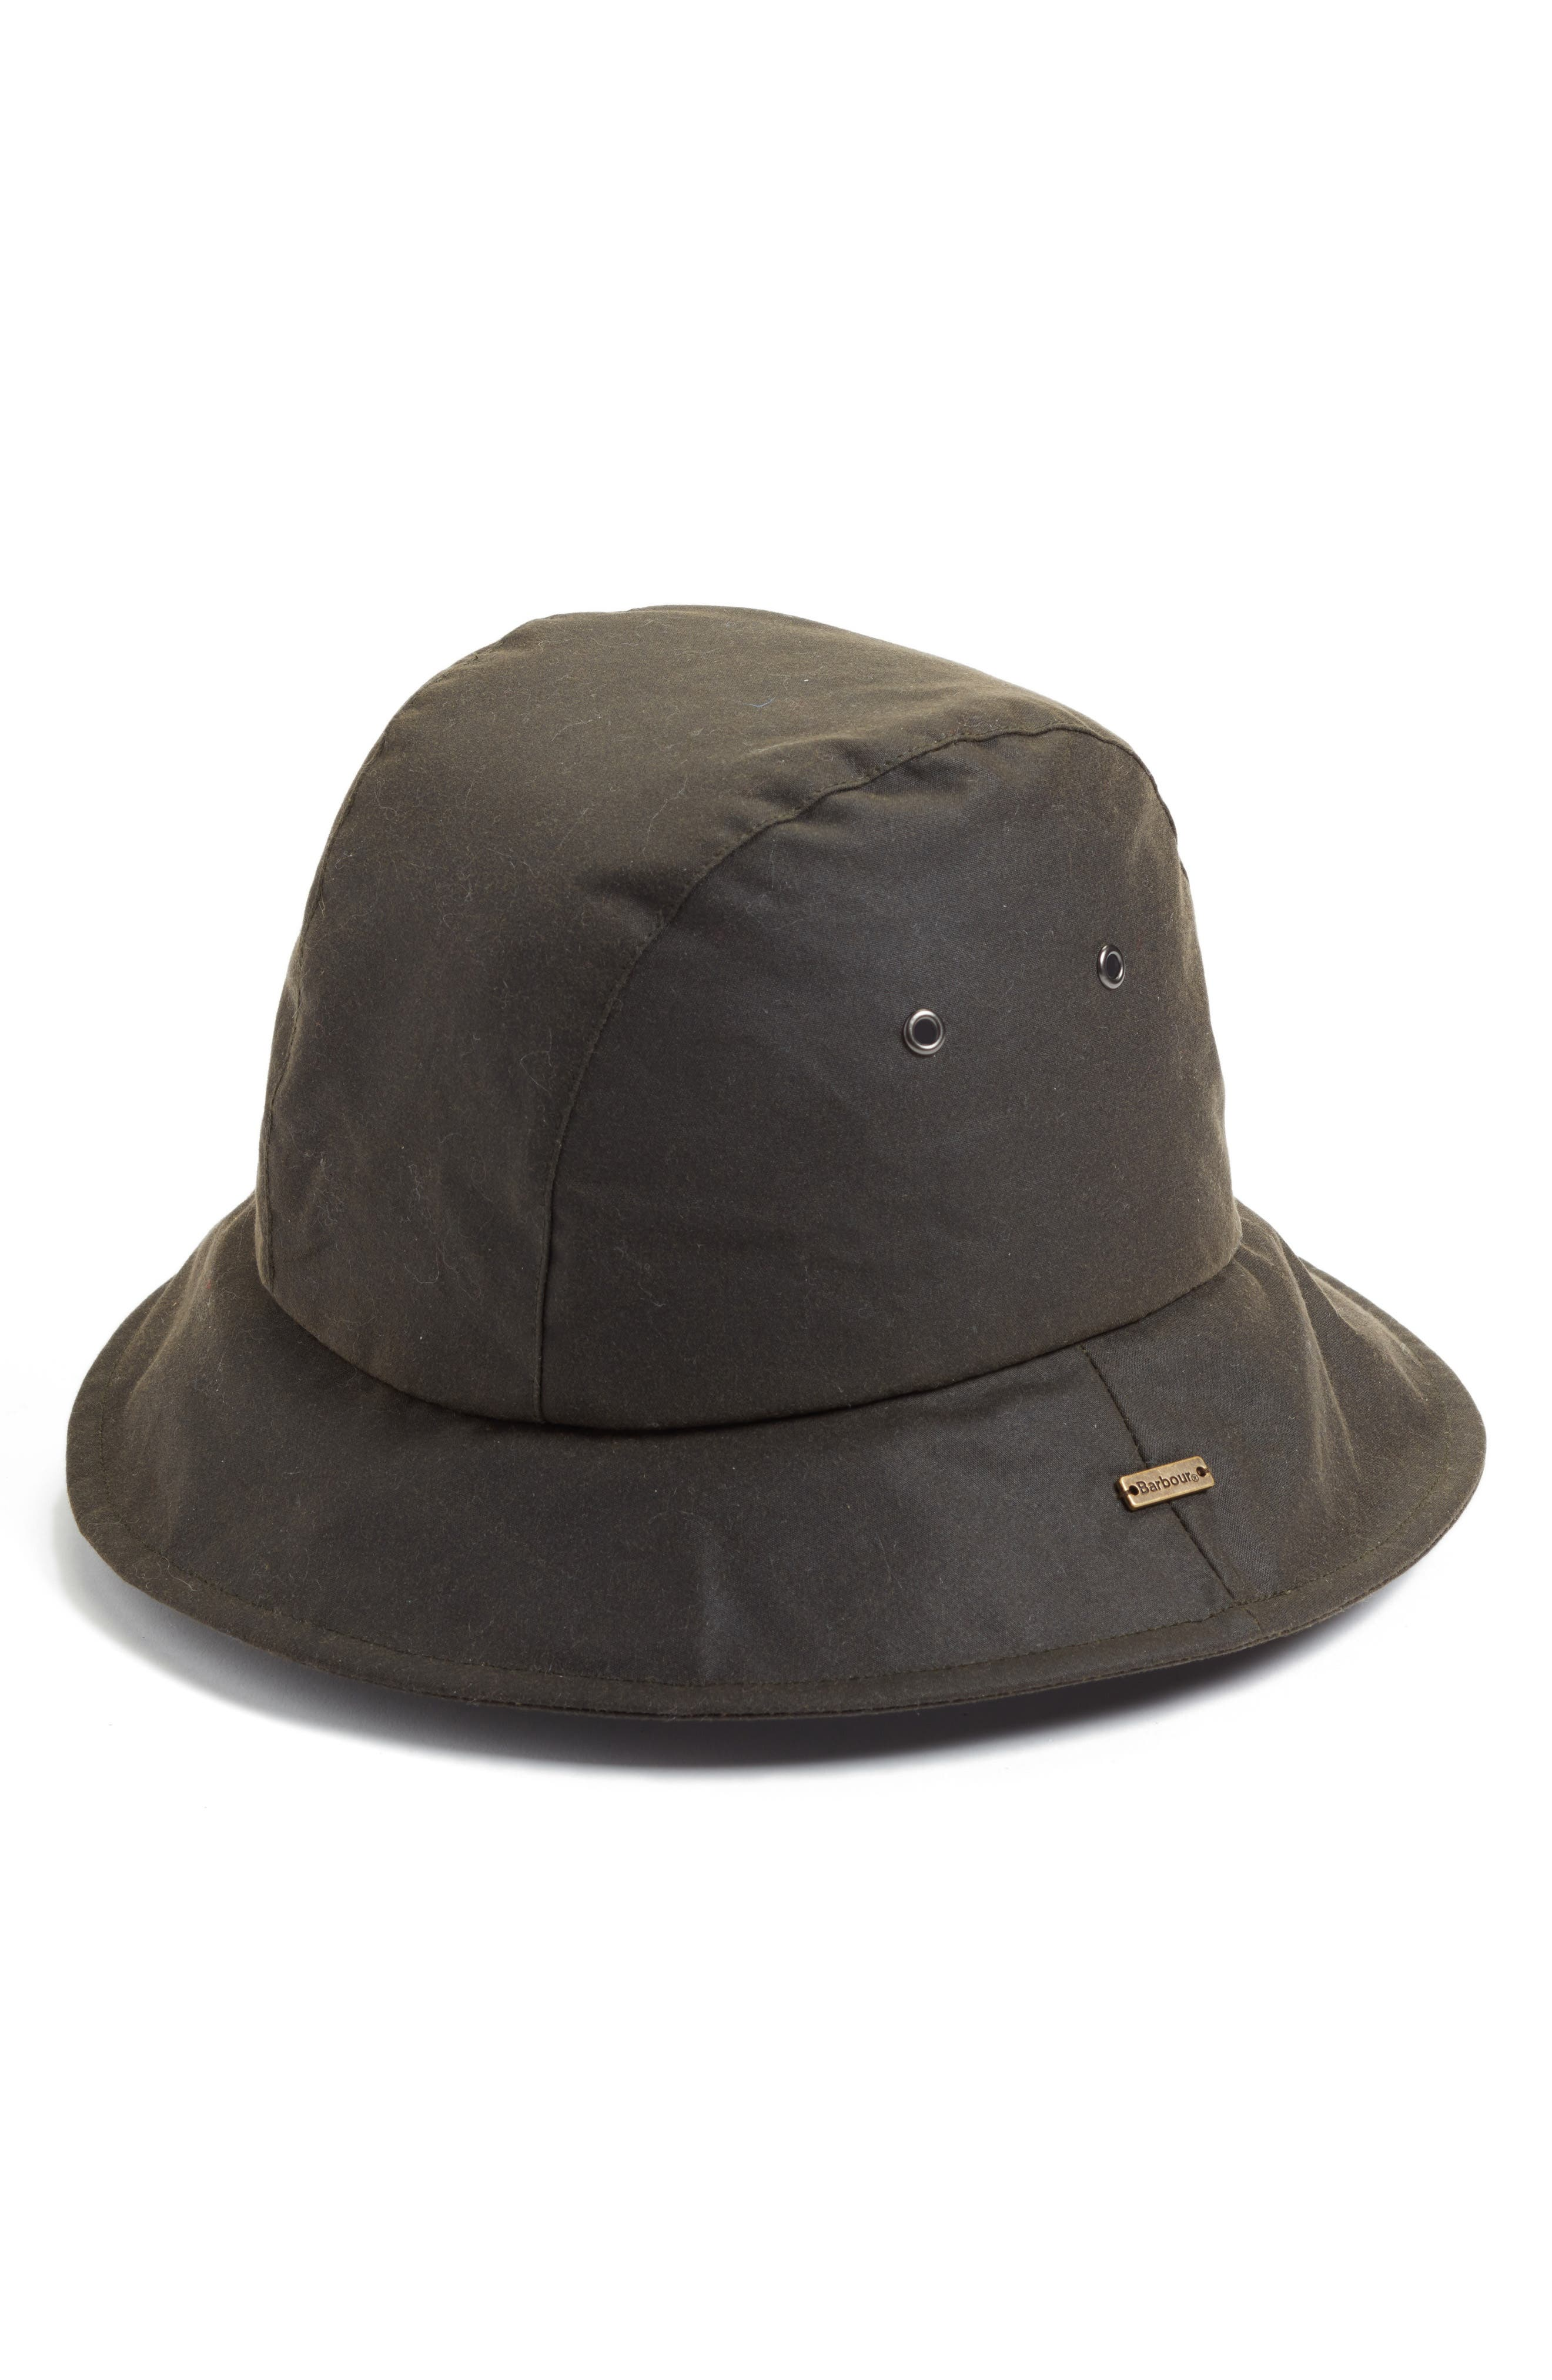 Barbou Sou Wester Bucket Hat